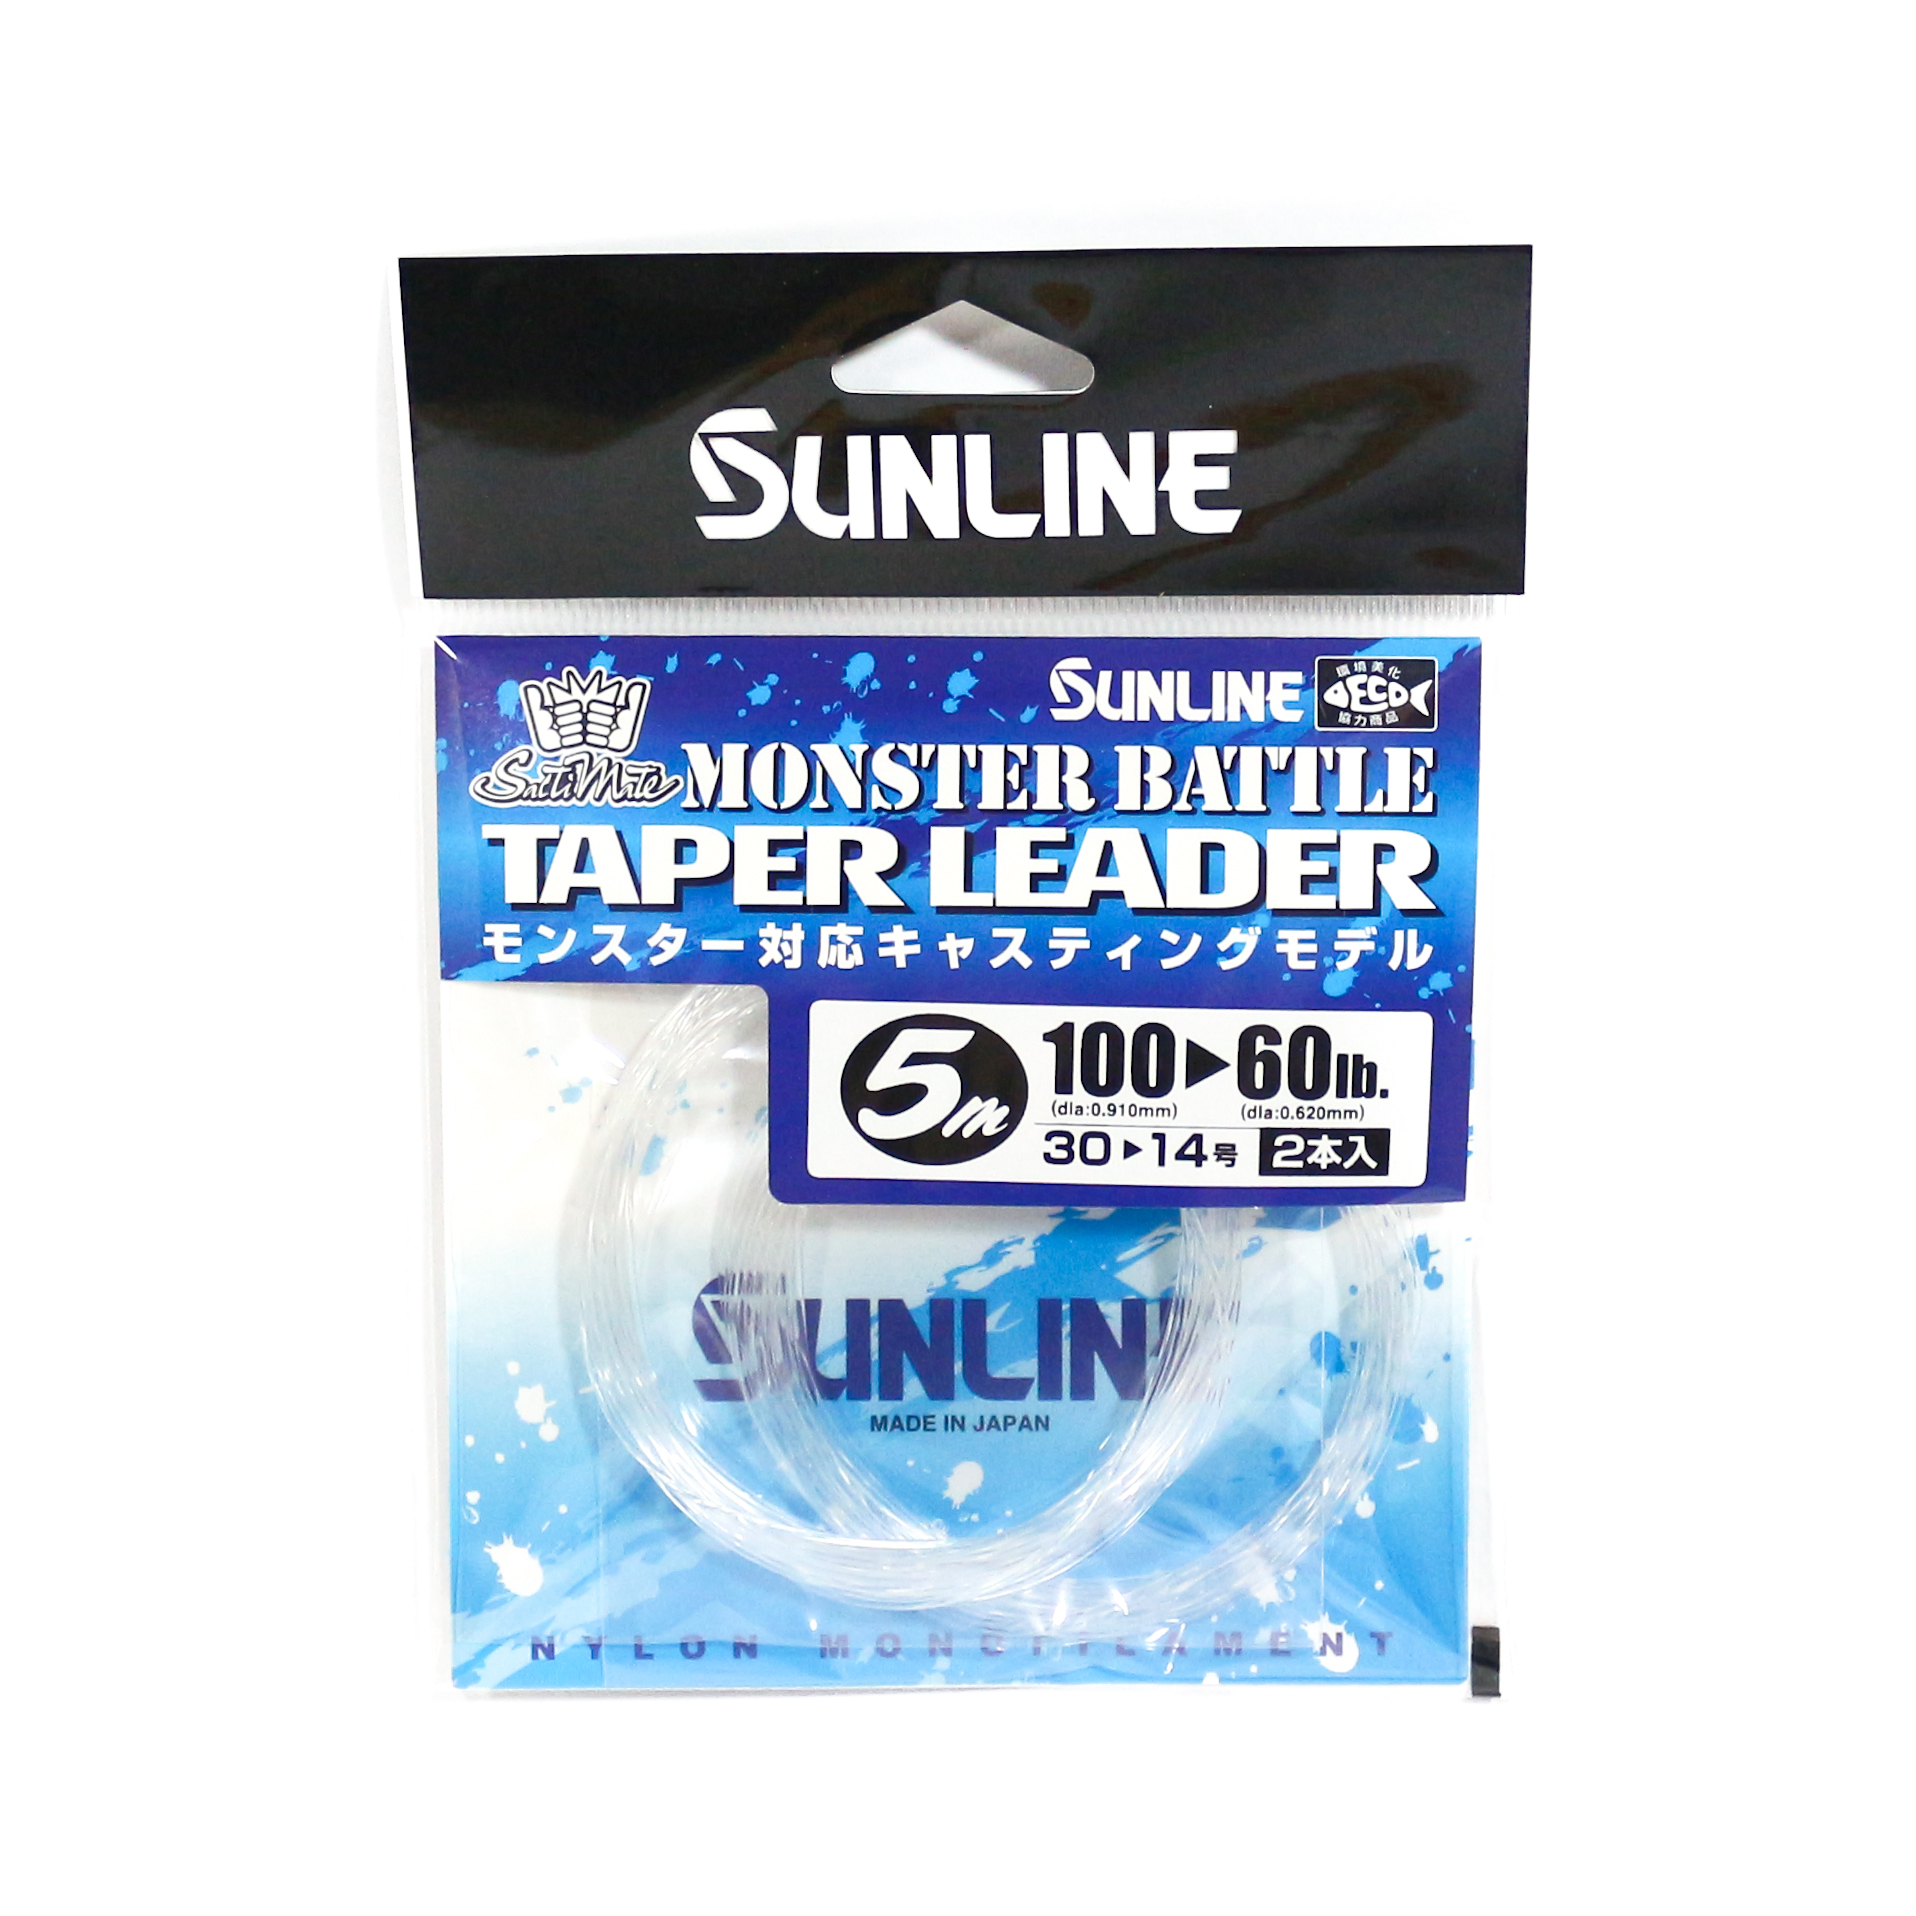 Sunline Taper Leader Monster Battle Nylon Line 5m , 60-100 lb (8652)